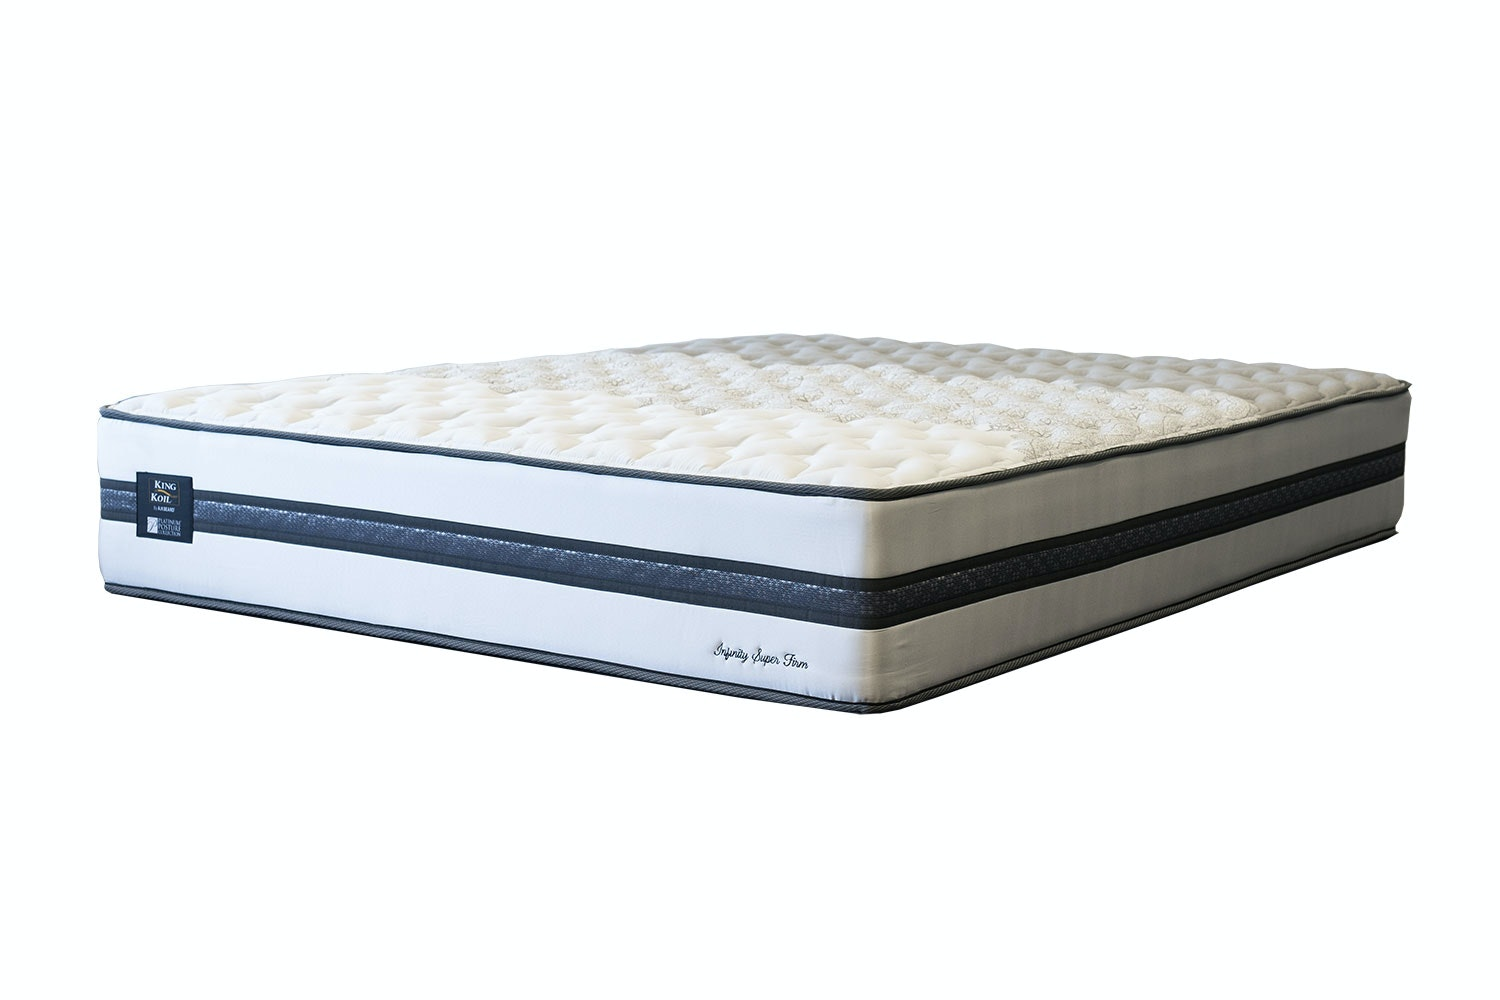 Infinity Super Firm King Single Mattress by King Koil